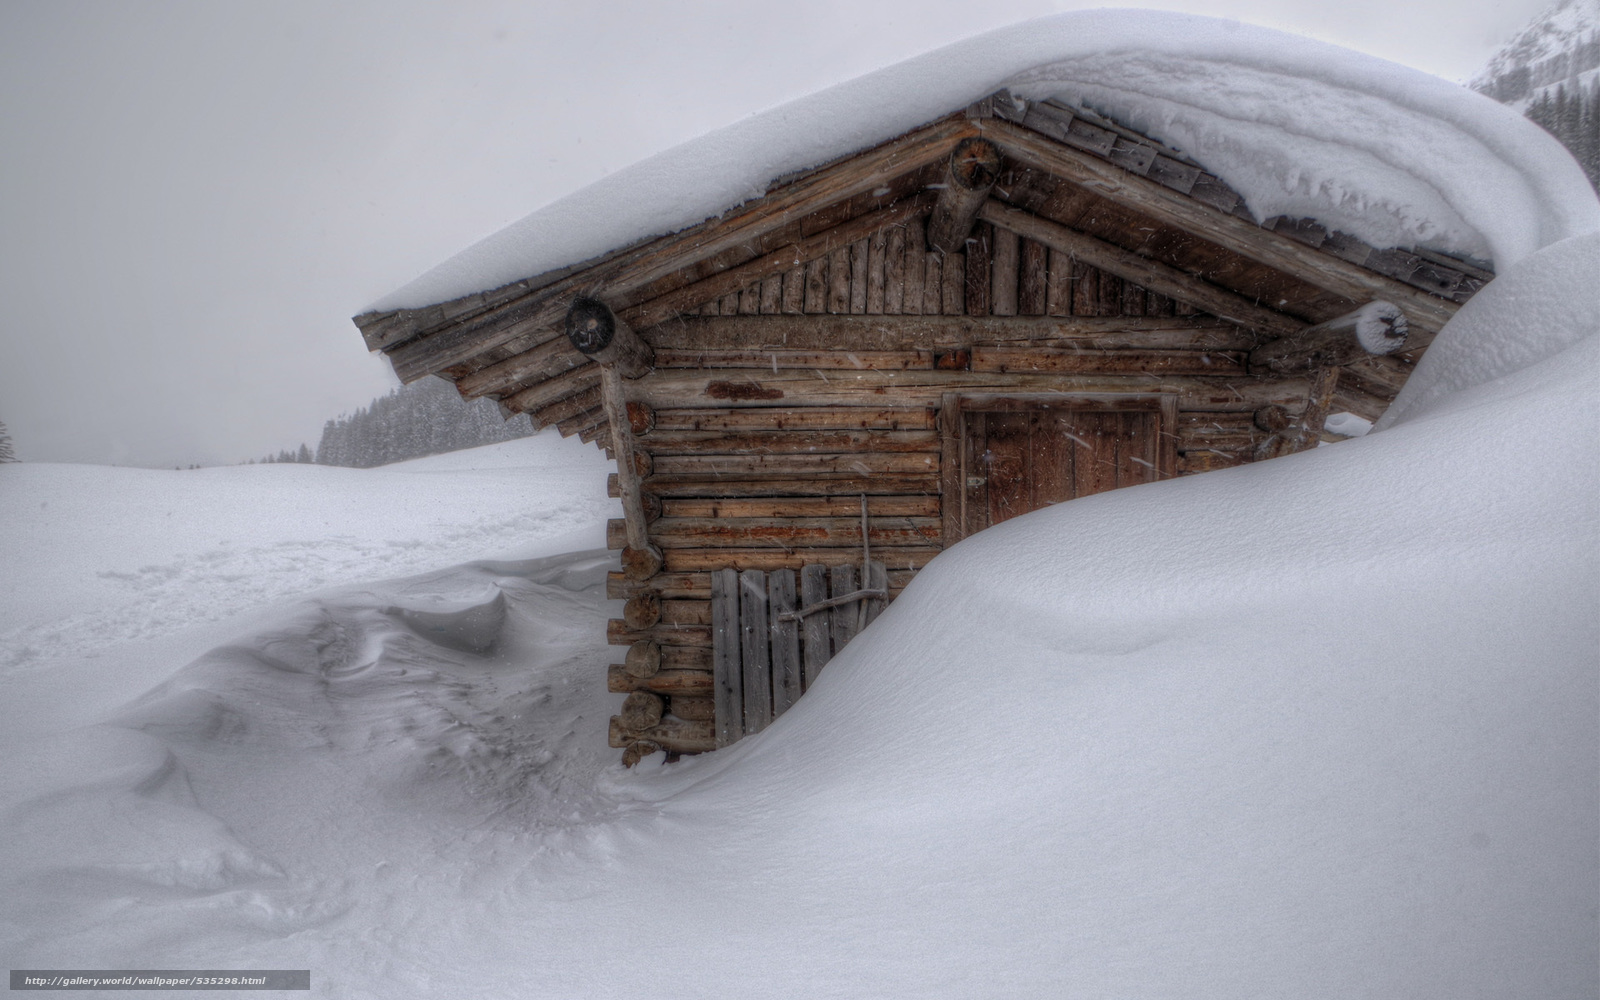 Download wallpaper winter drifts snow cabin desktop wallpaper 1600x1000